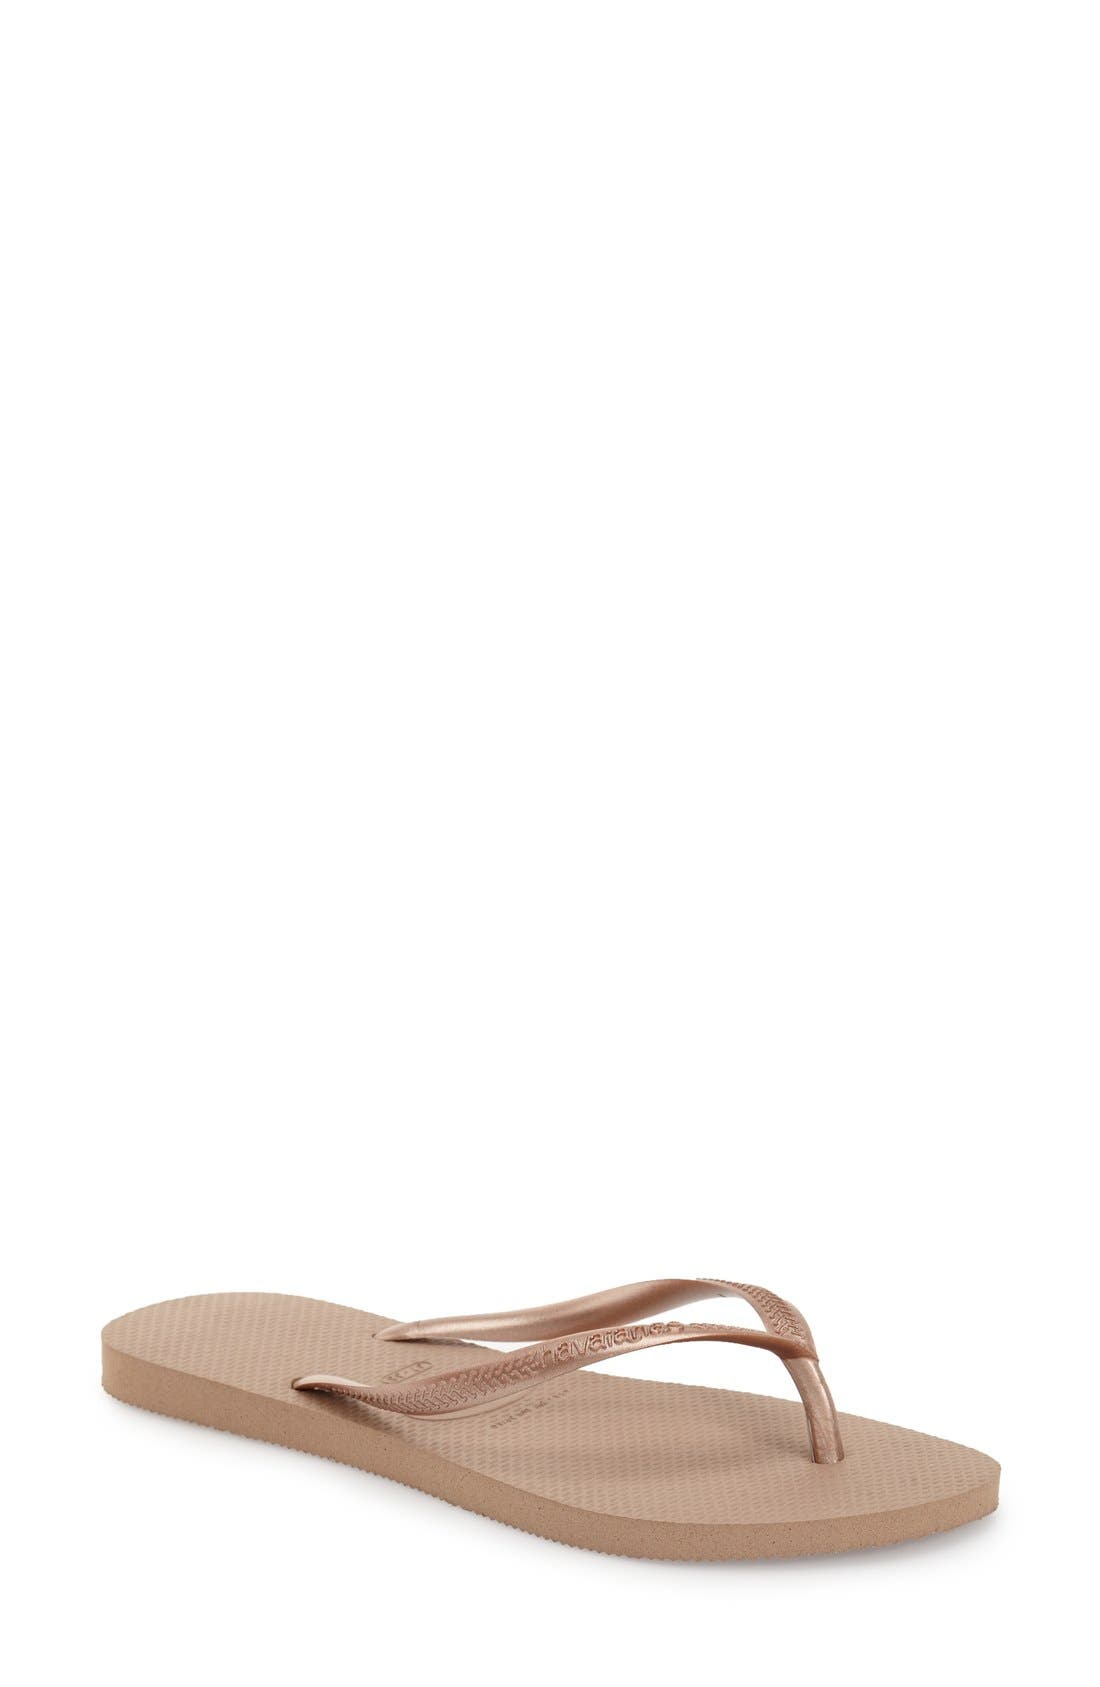 Womens Shoes On Sale, Rose Peach, Leather, 2017, 3 4.5 5.5 Tod's